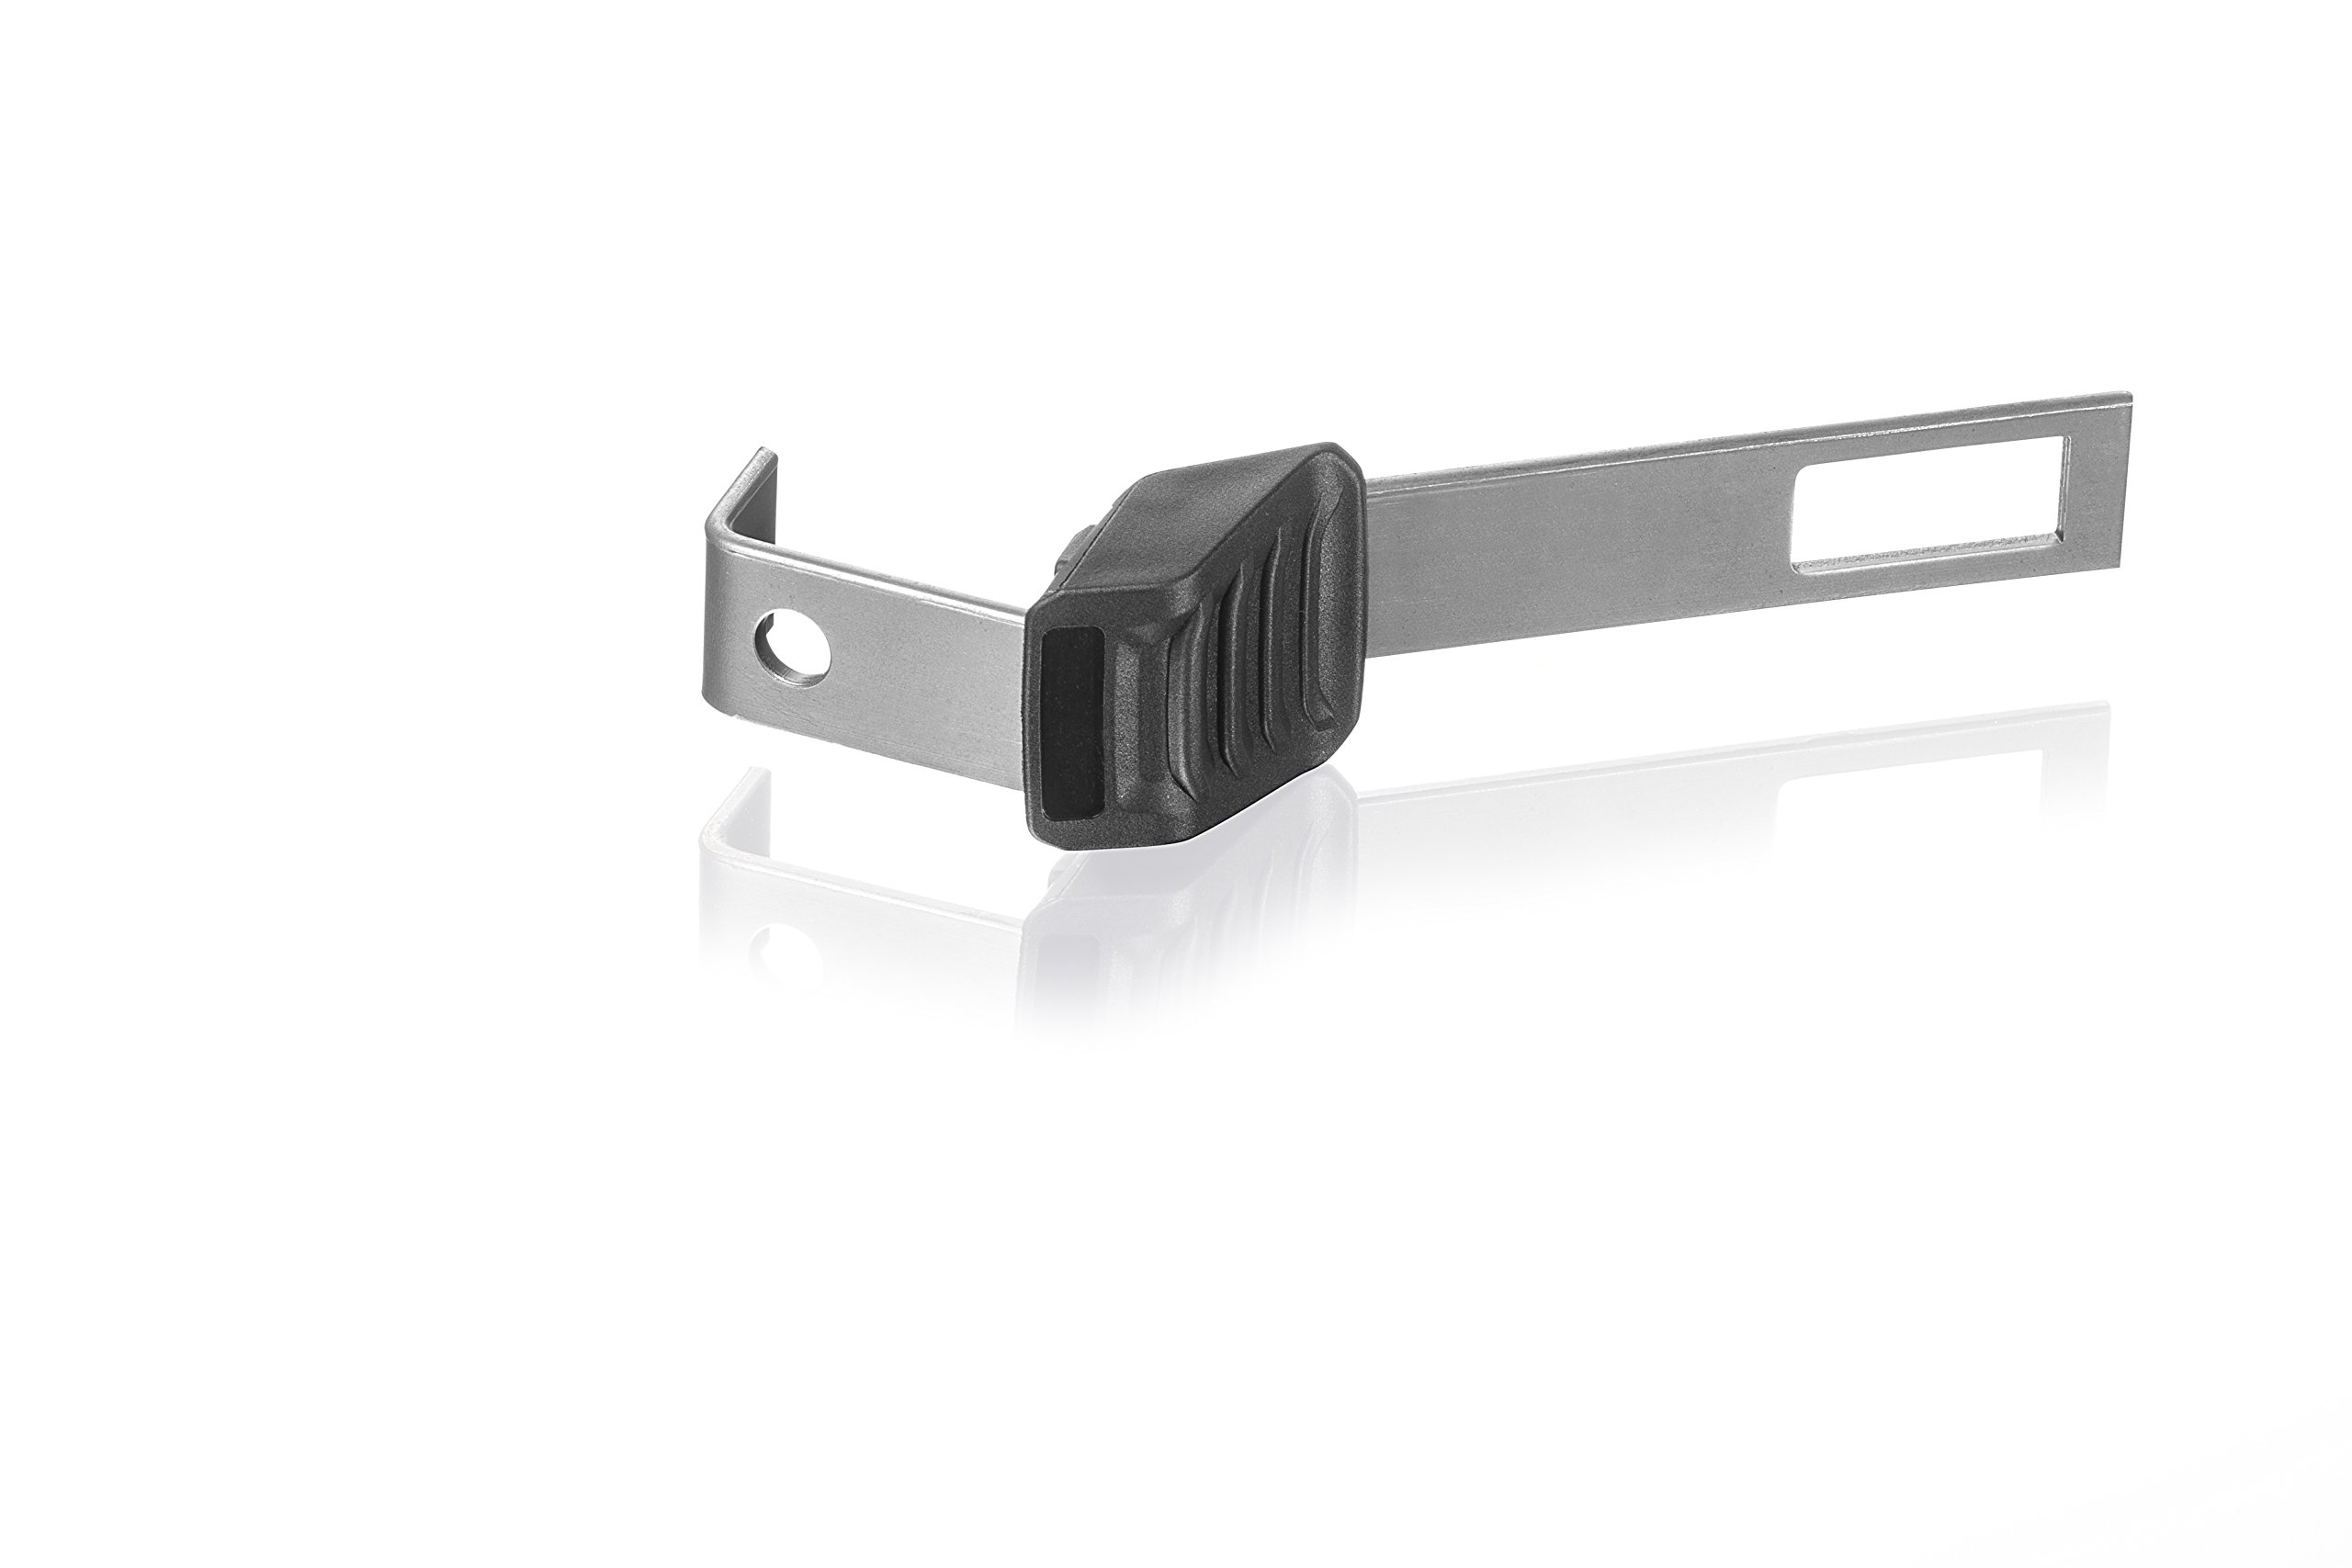 JOKARI 79016 4-70 Cable Knife System, Add-On Hook for 4 mm - 16 mm Cable Size